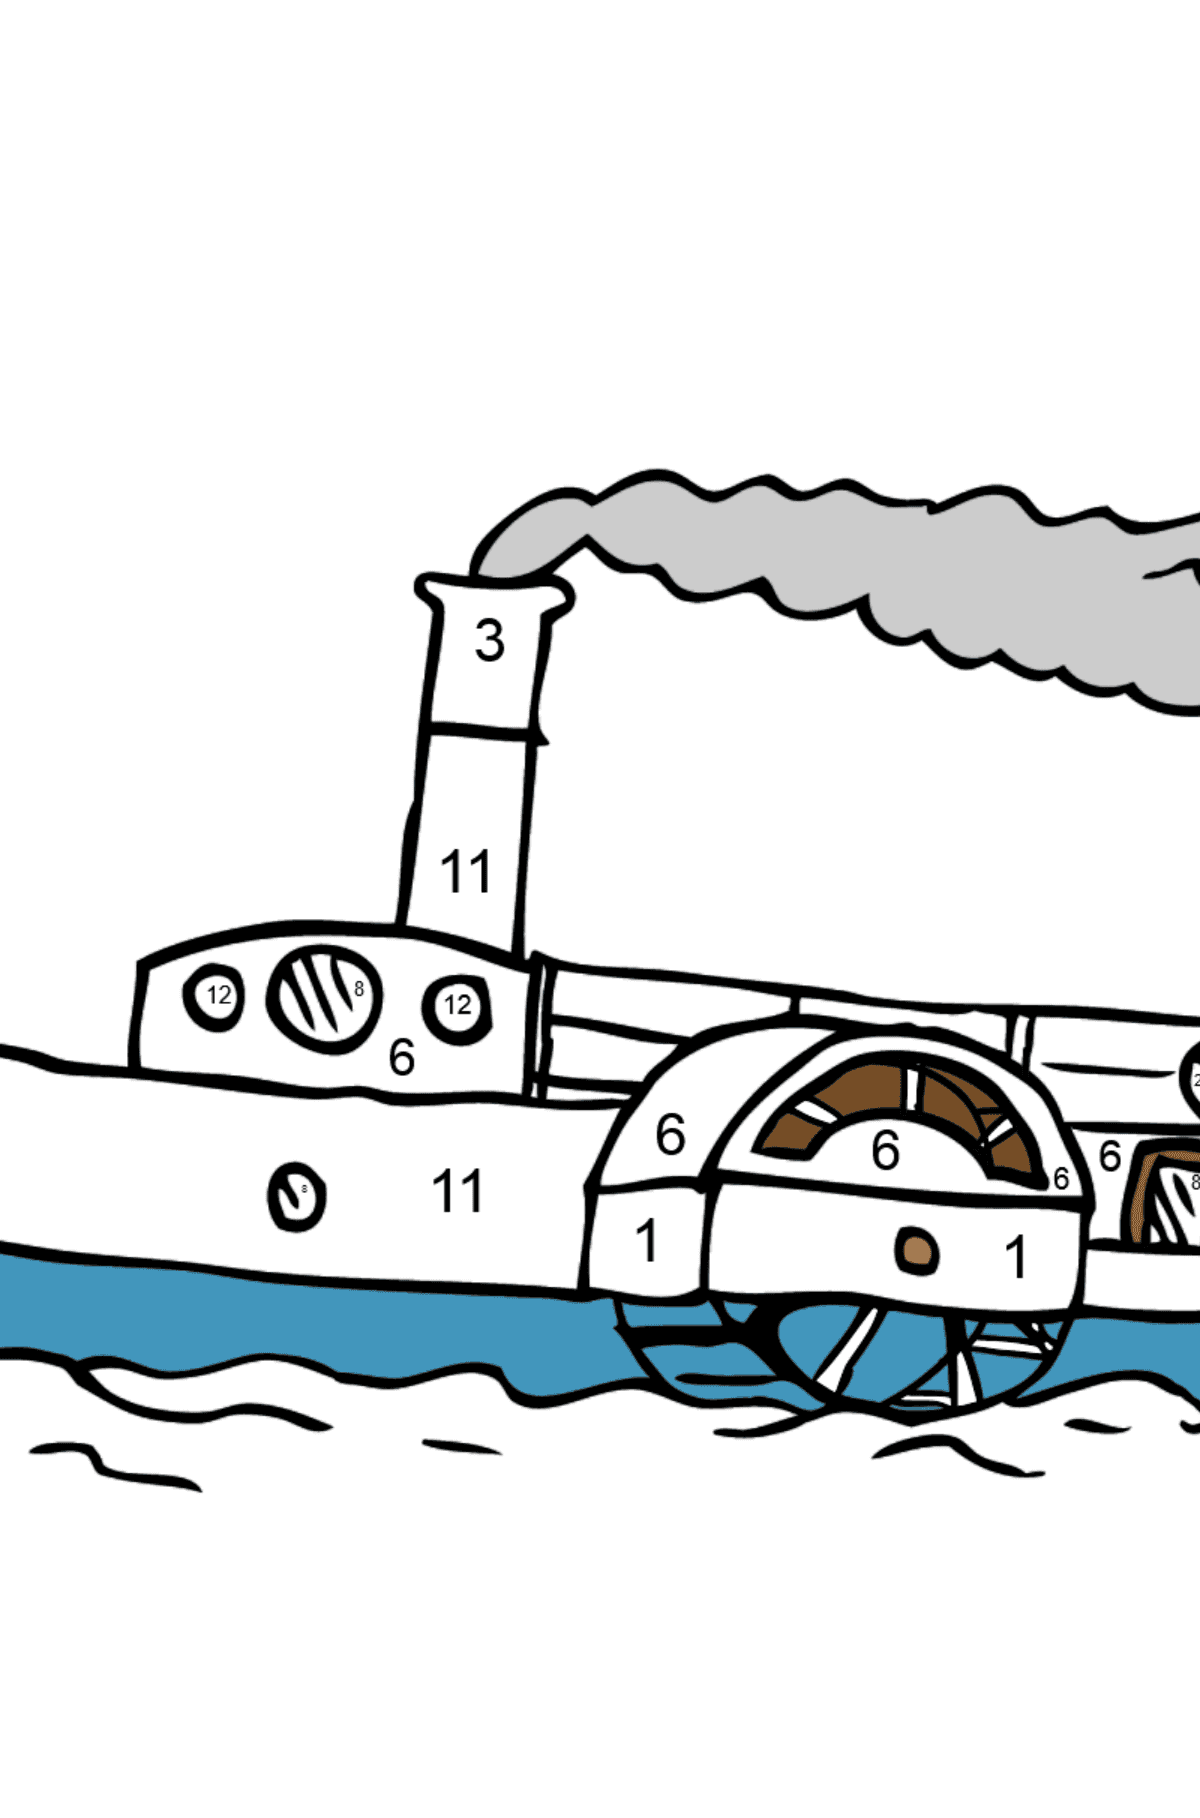 Coloring Page - A Ship with a Paddle Wheel - Coloring by Numbers for Kids